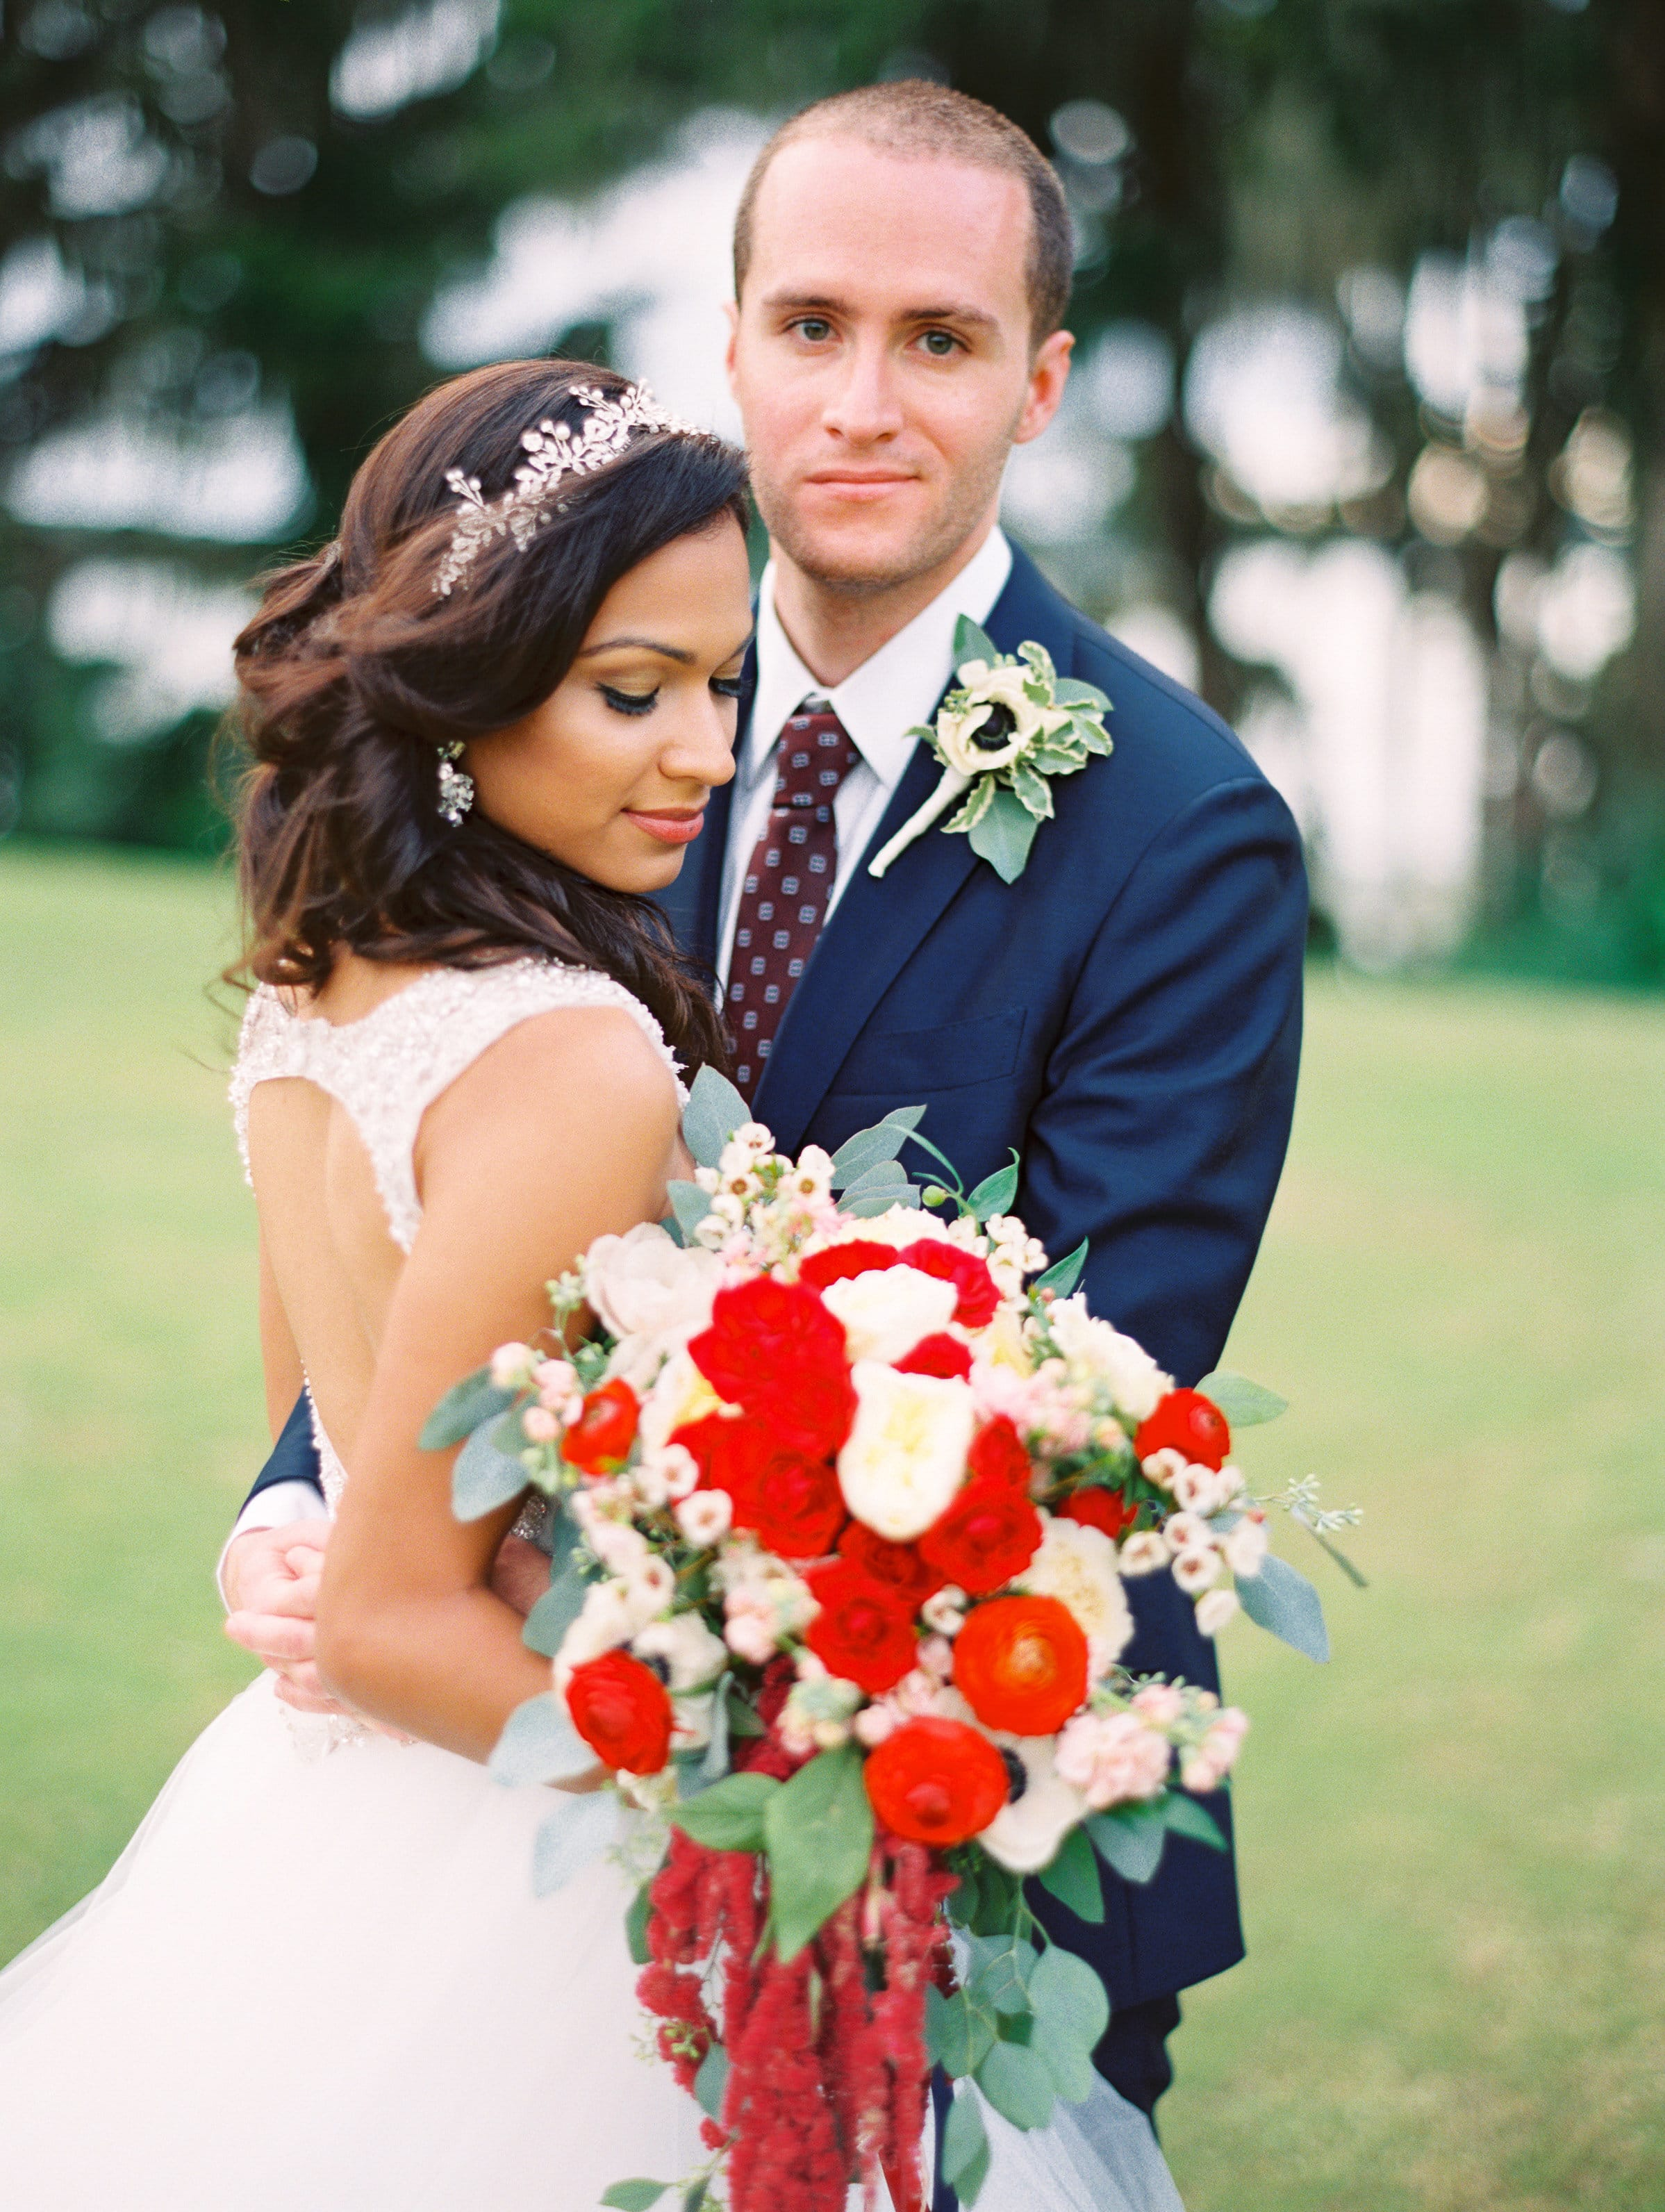 Groom with Bride holding Romantic Red Wedding Bouquet